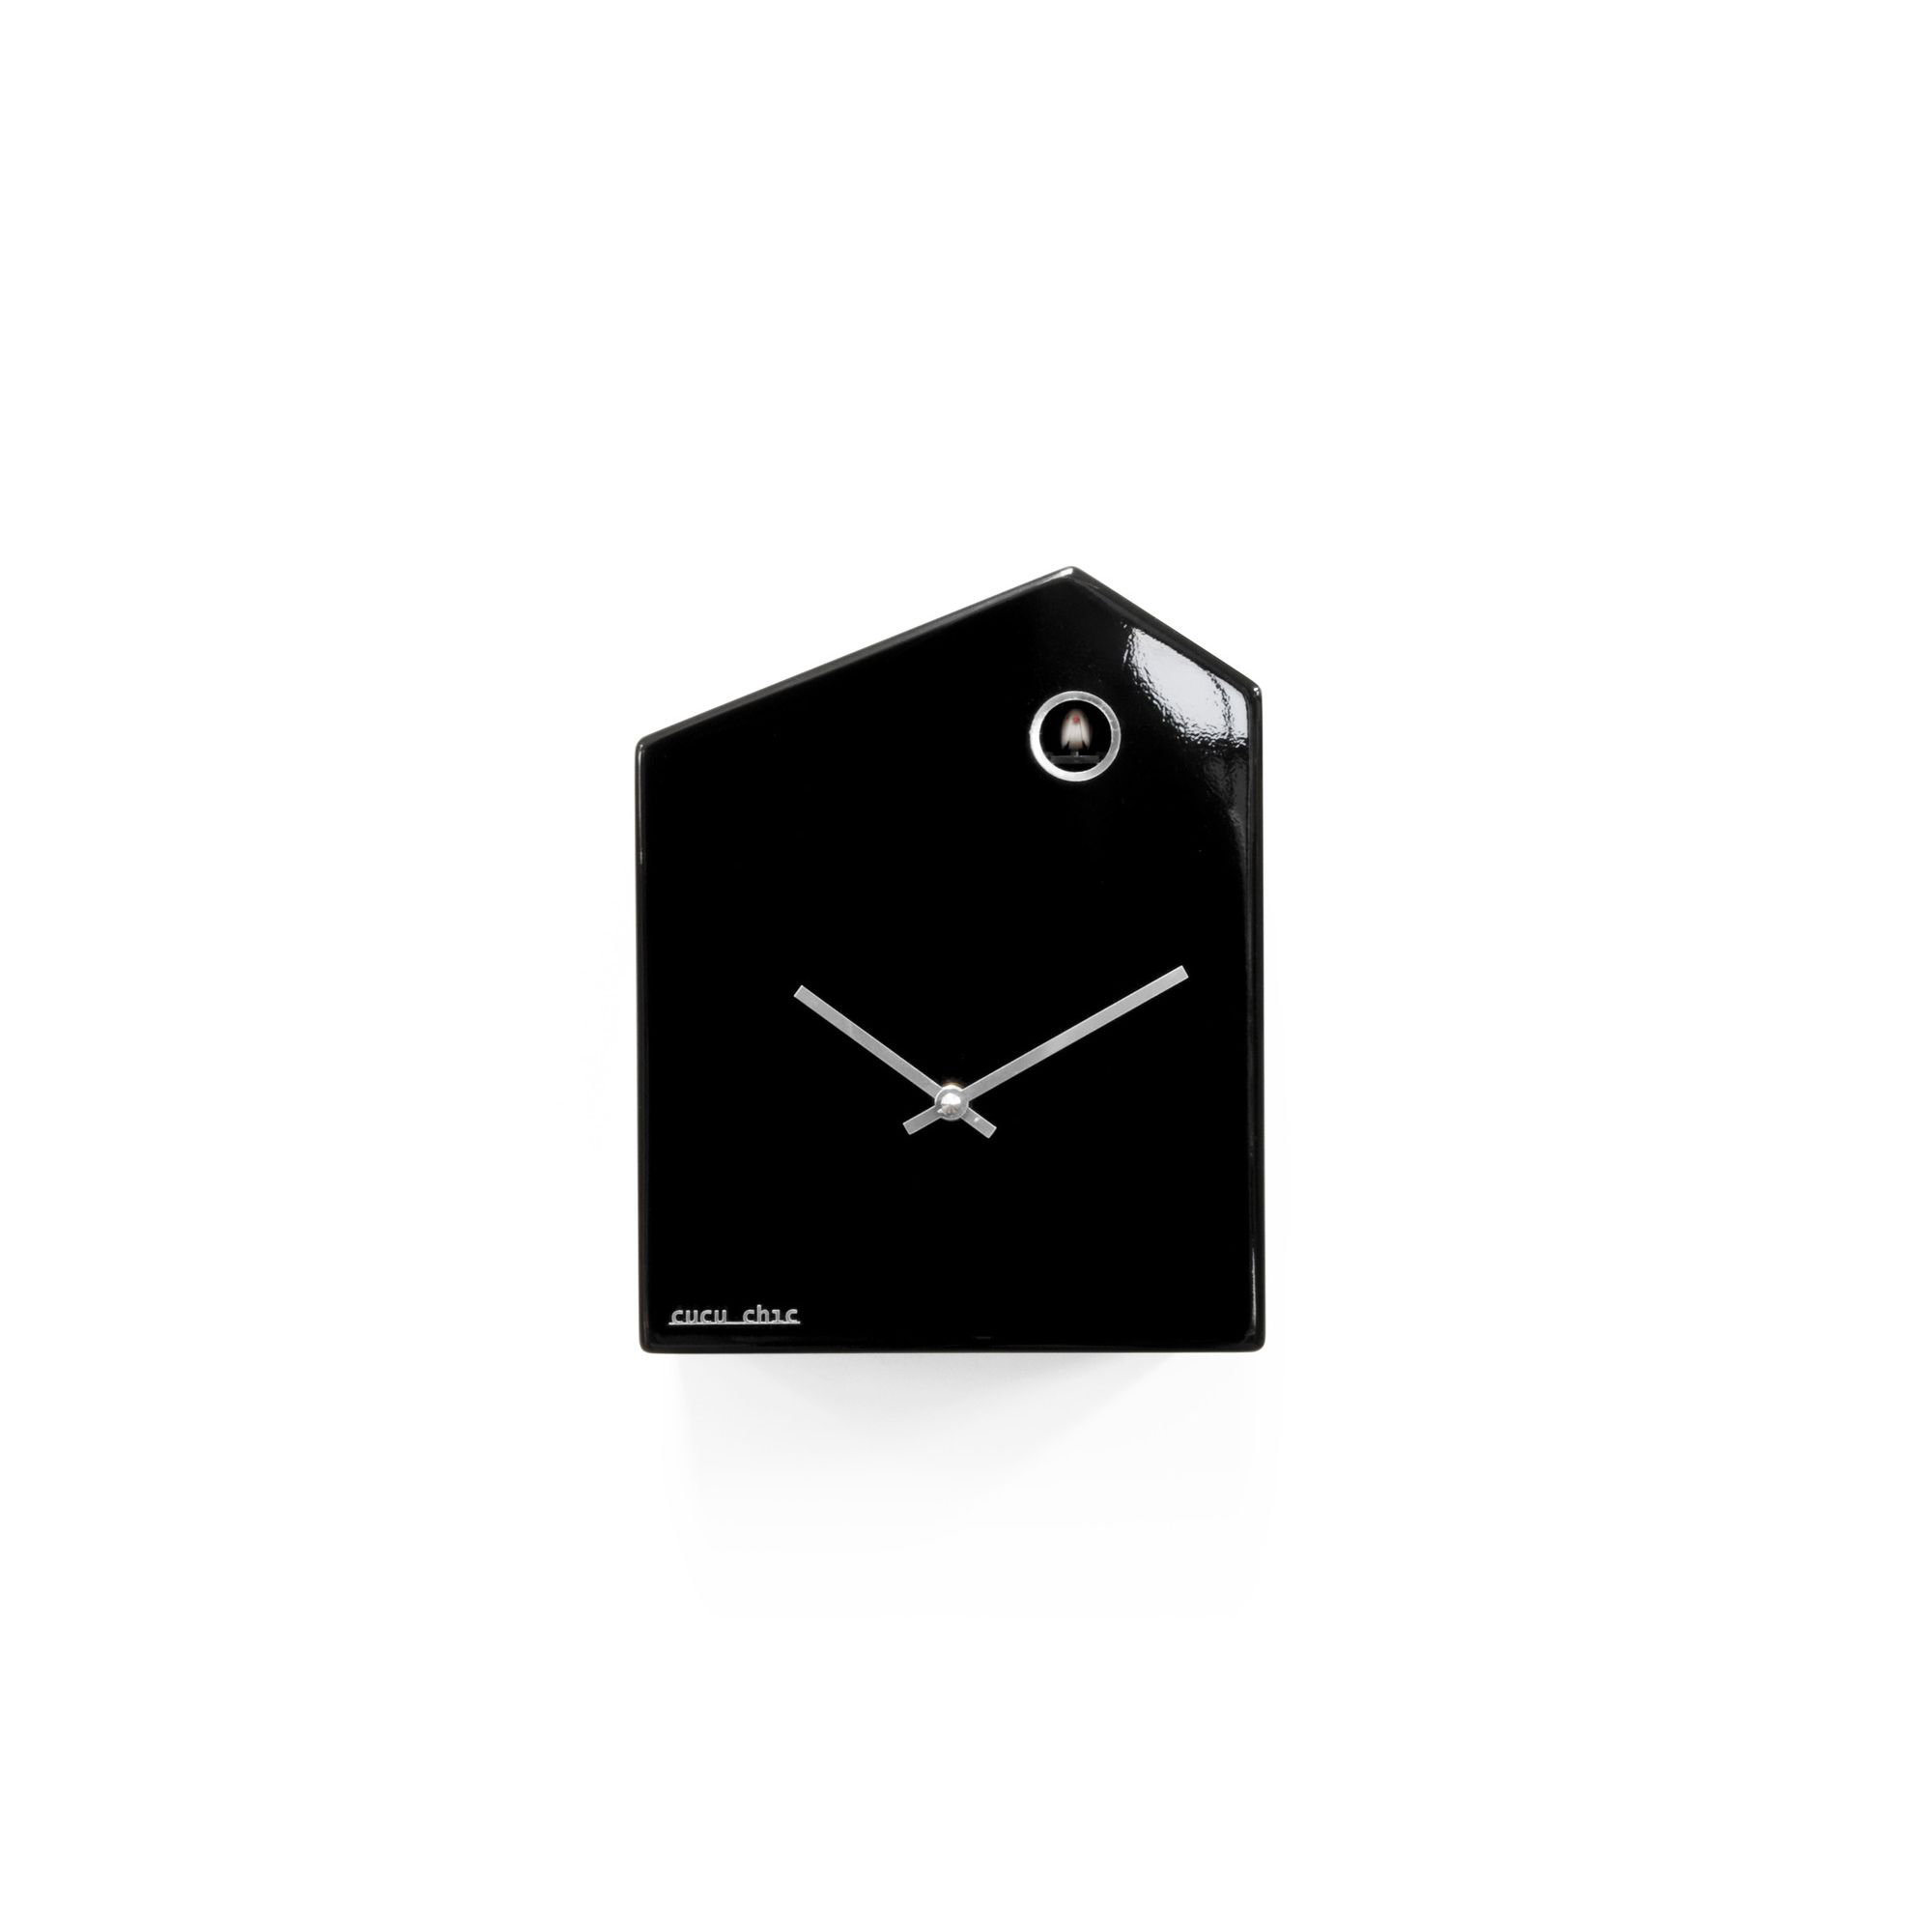 Progetti Cucu Chic Cuckoo Wall Clock - Gloss Black at Tesco Direct